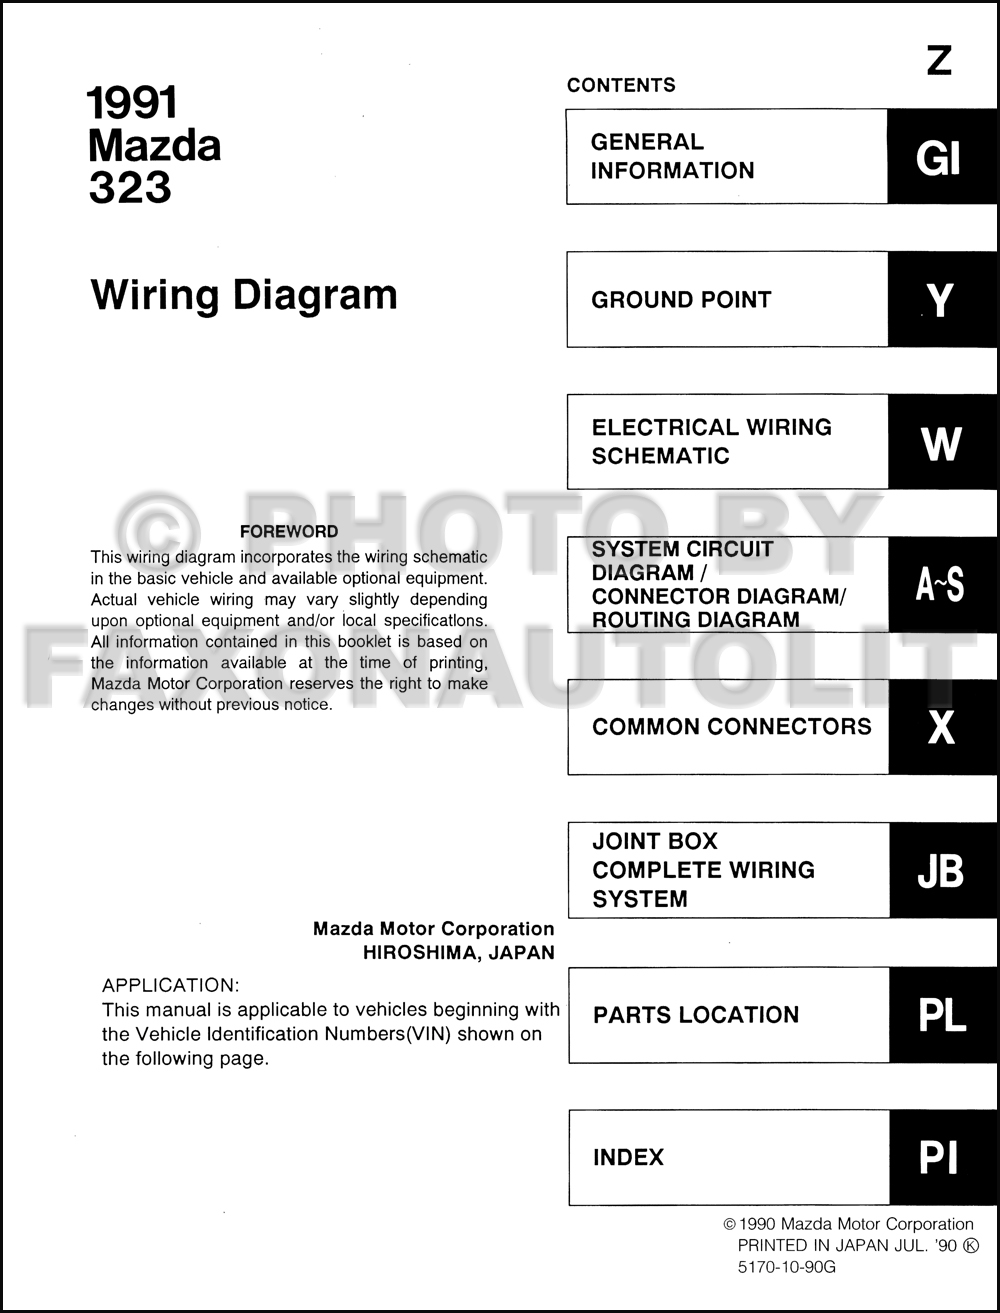 Mazda Familia 1997 Fuse Box Diagram Archive Of Automotive Wiring 2007 1991 323 And Protege Manual Original Rh Faxonautoliterature Com